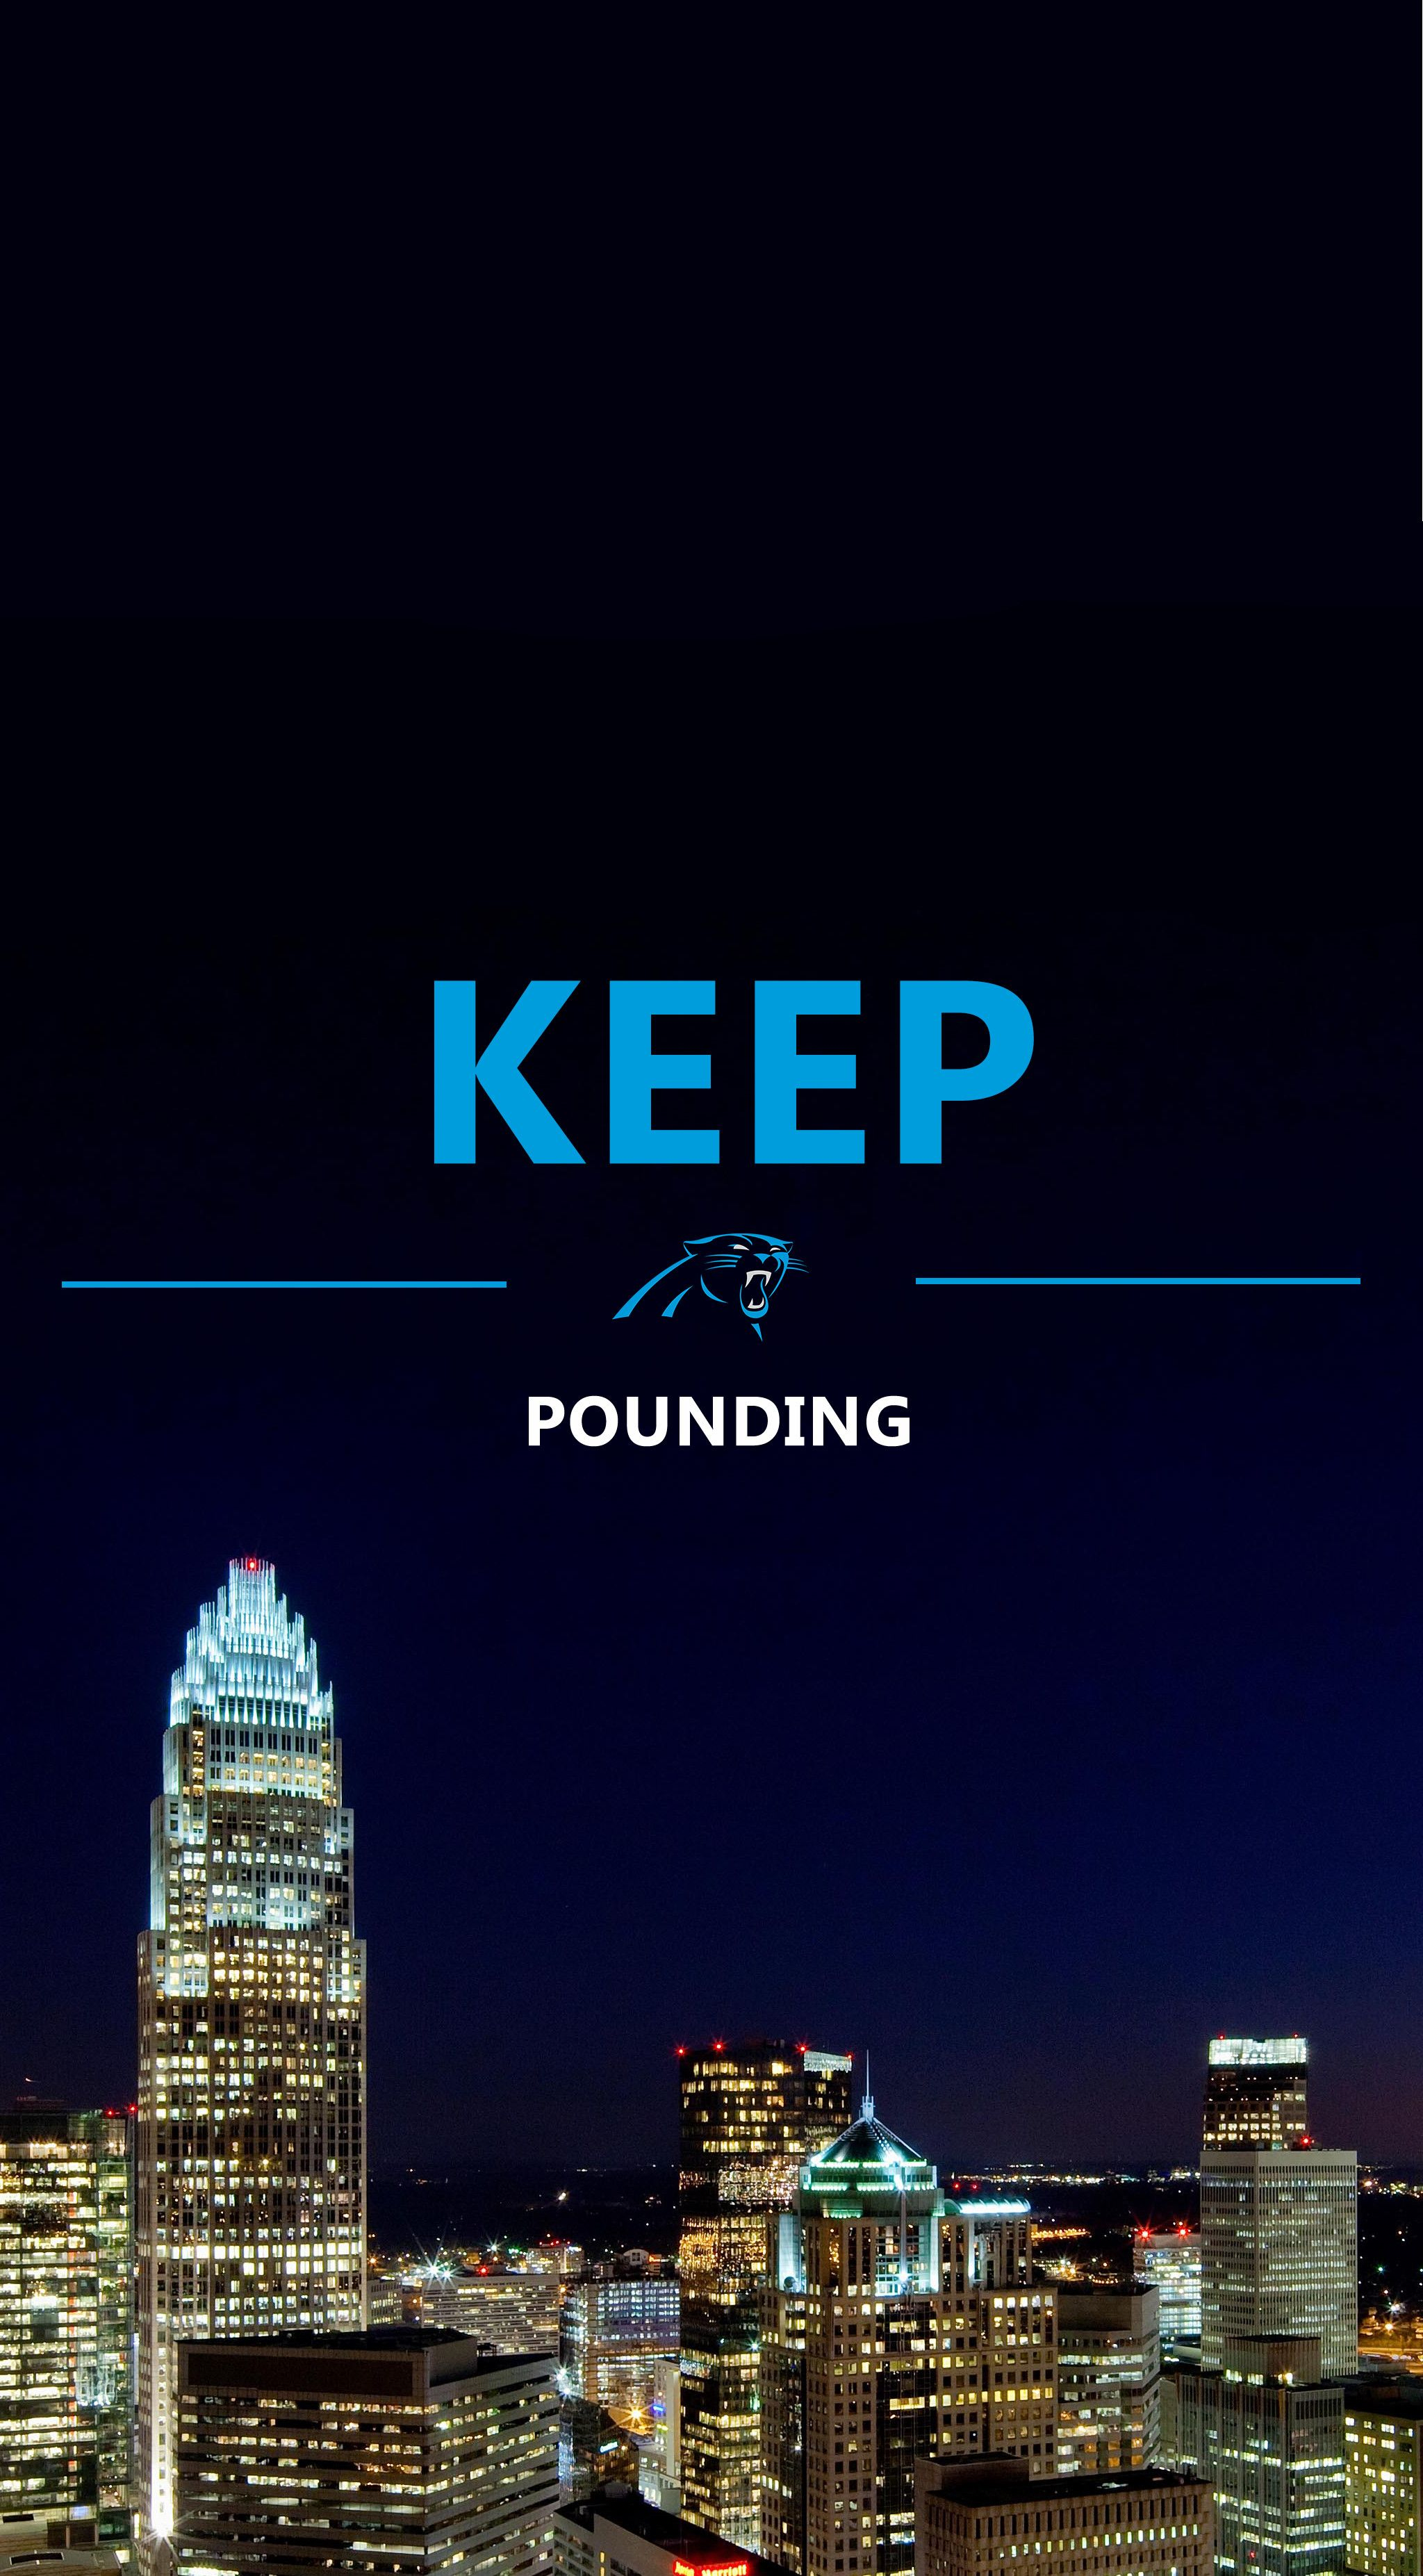 Pin by Mary R Jahnke on Carolina panthers Football / Sir